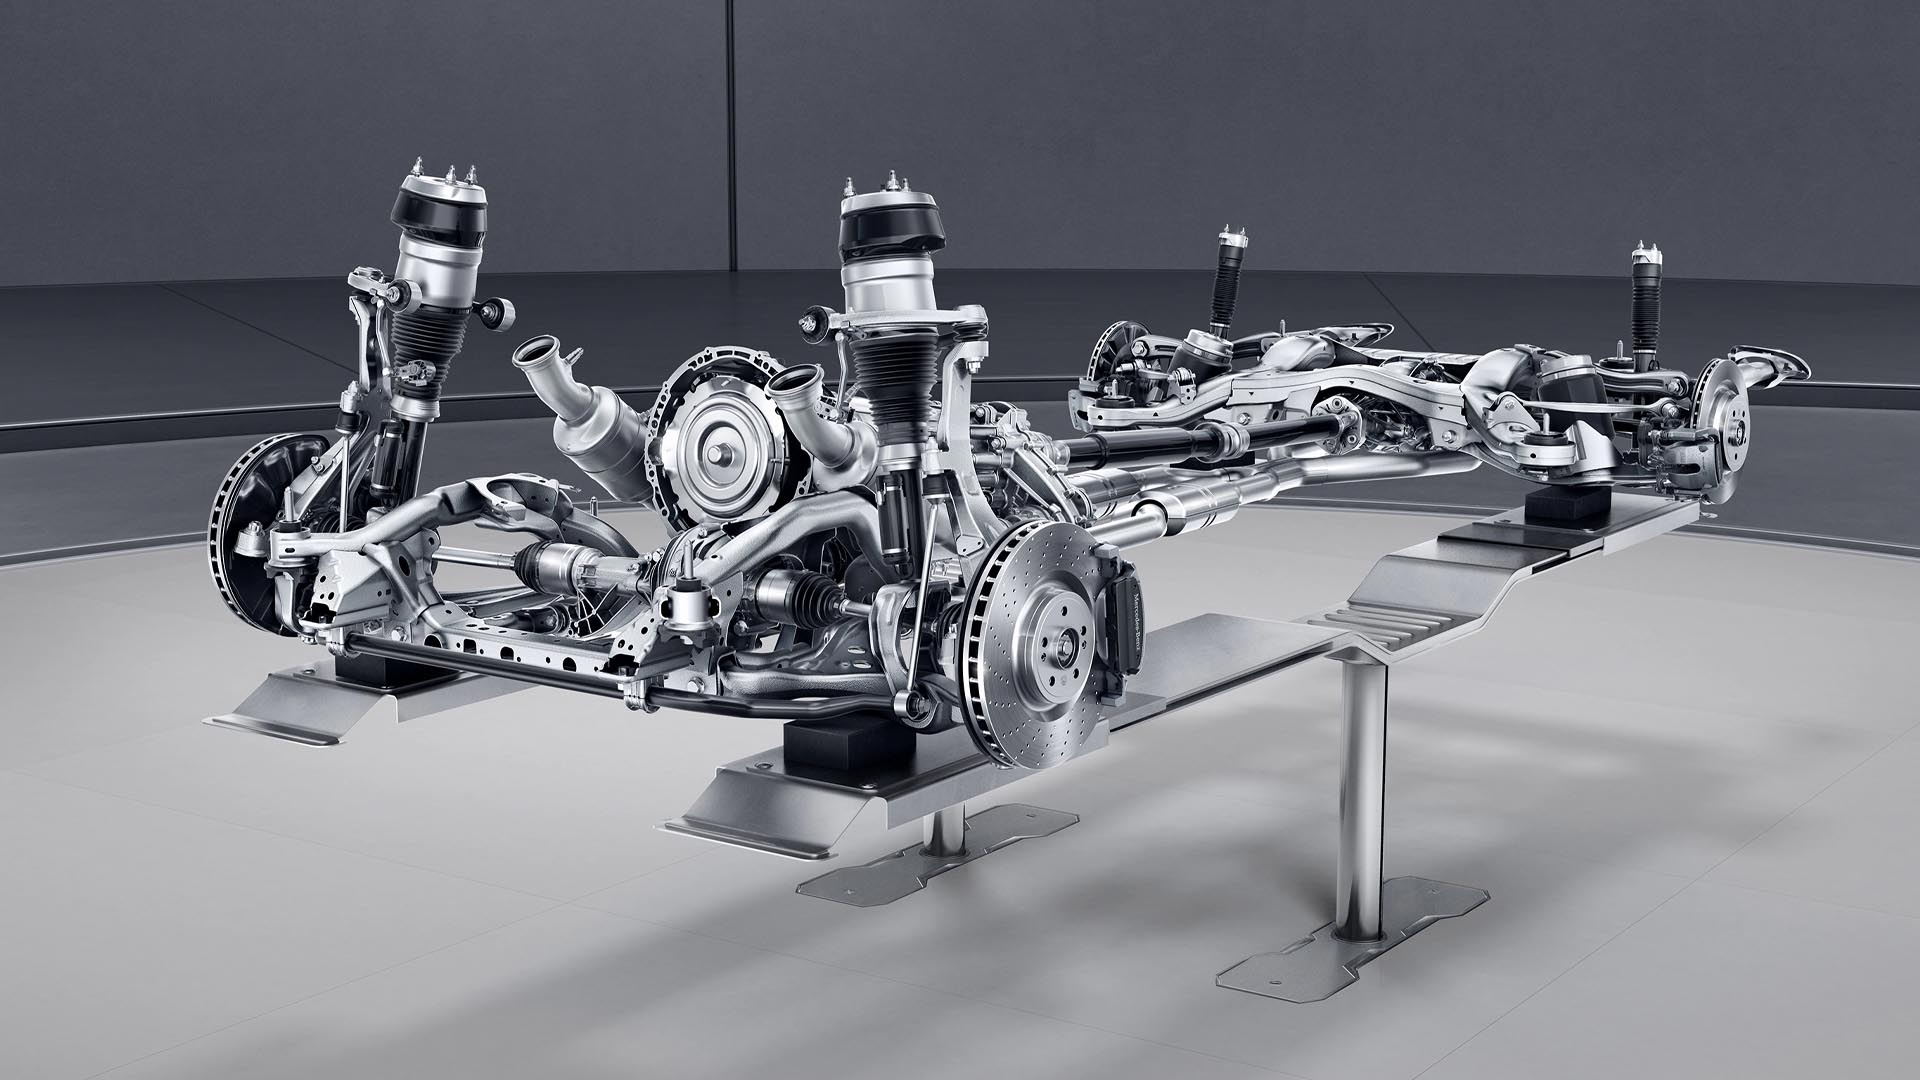 The Definitive Guide To The Mercedes-Benz AIRMATIC Suspension System